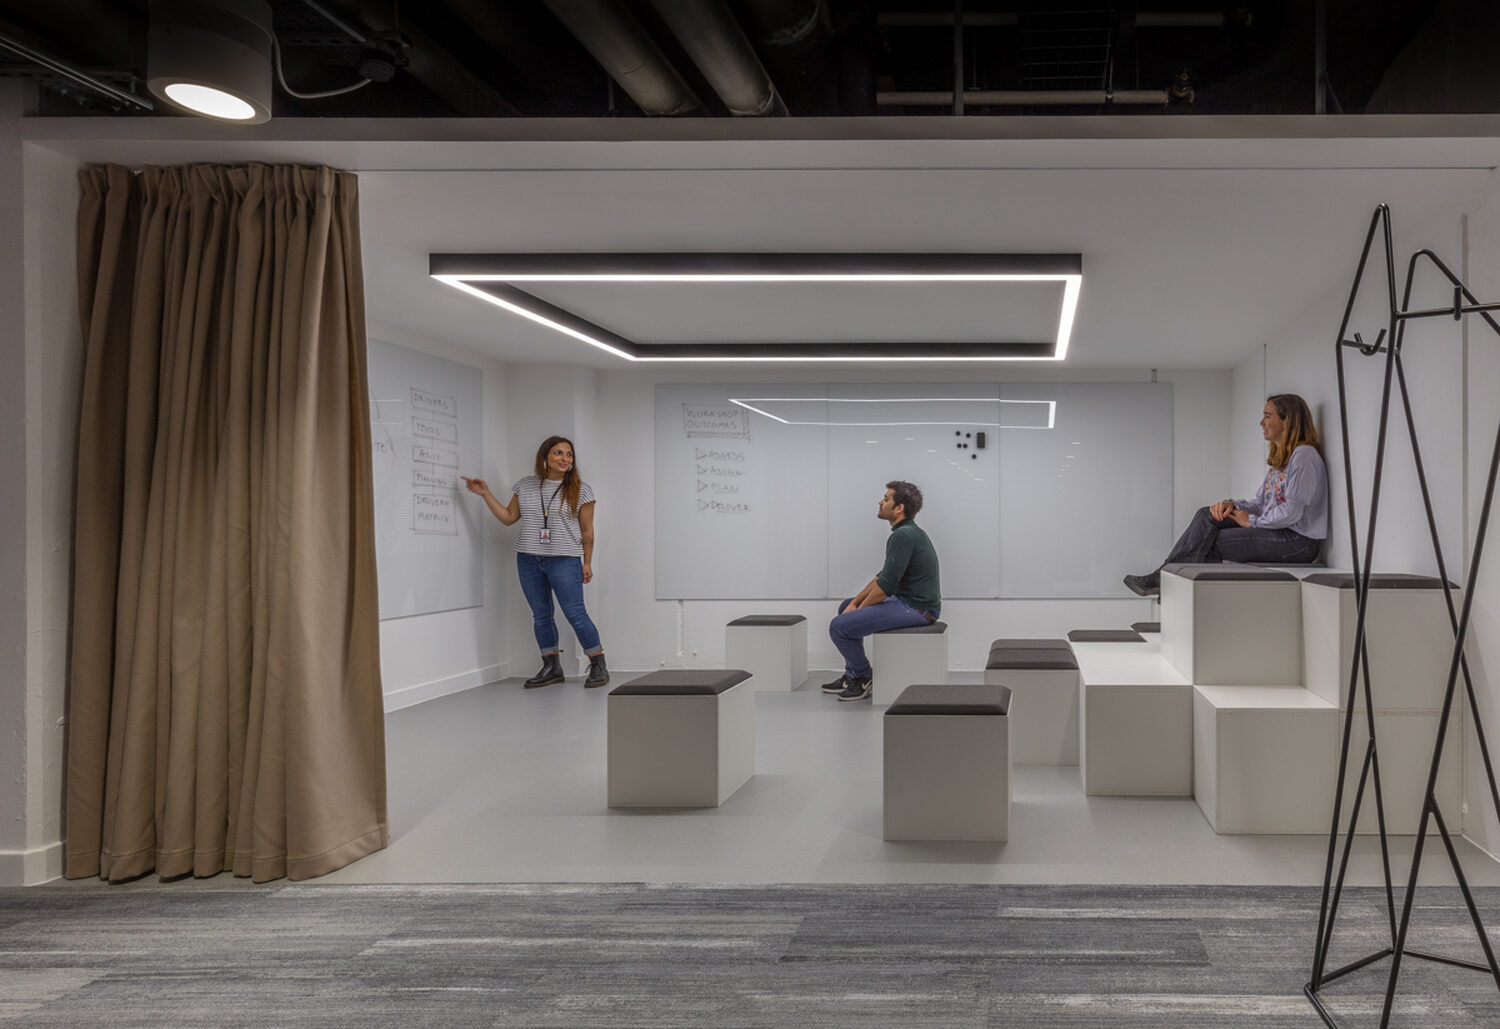 What do you need for your future ready workspace?